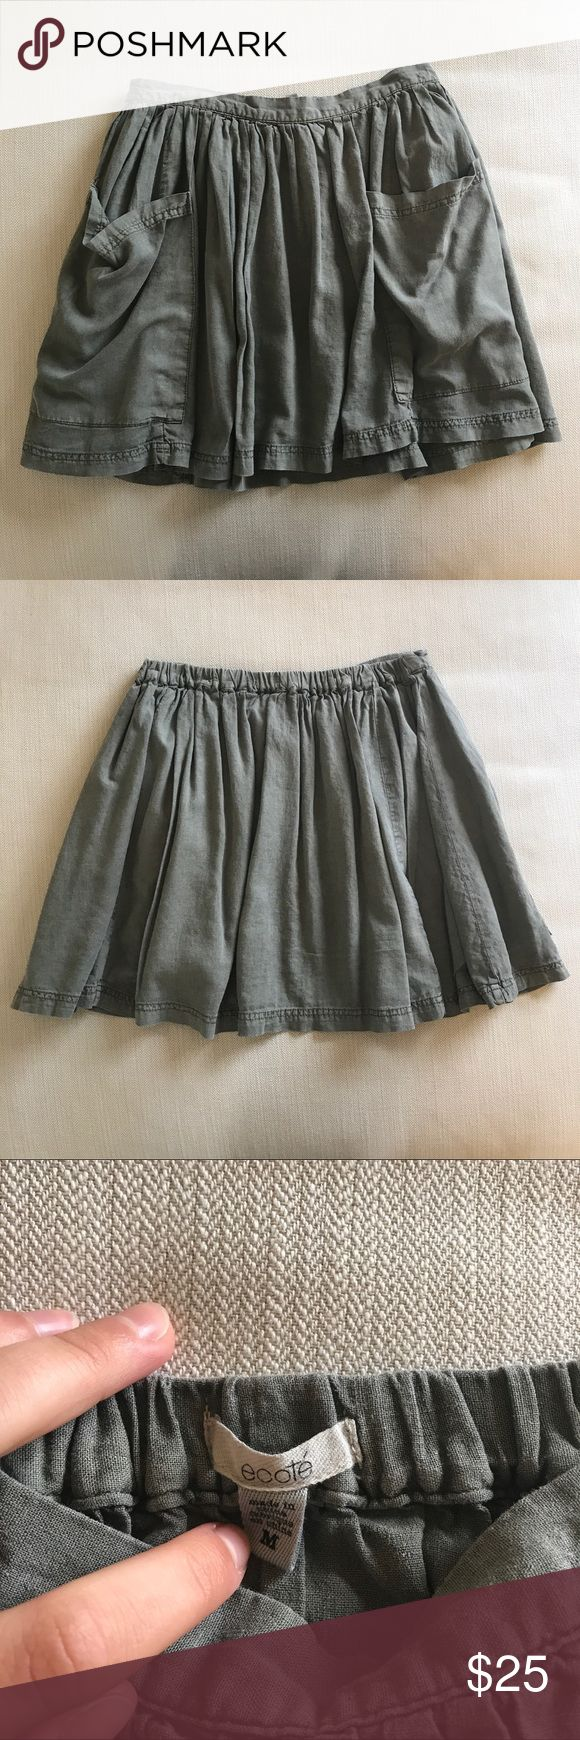 Urban Outfitters army green skirt UO army green pocket skirt. Worn a few times but still in original condition. Willing to negotiate on price Urban Outfitters Skirts Mini